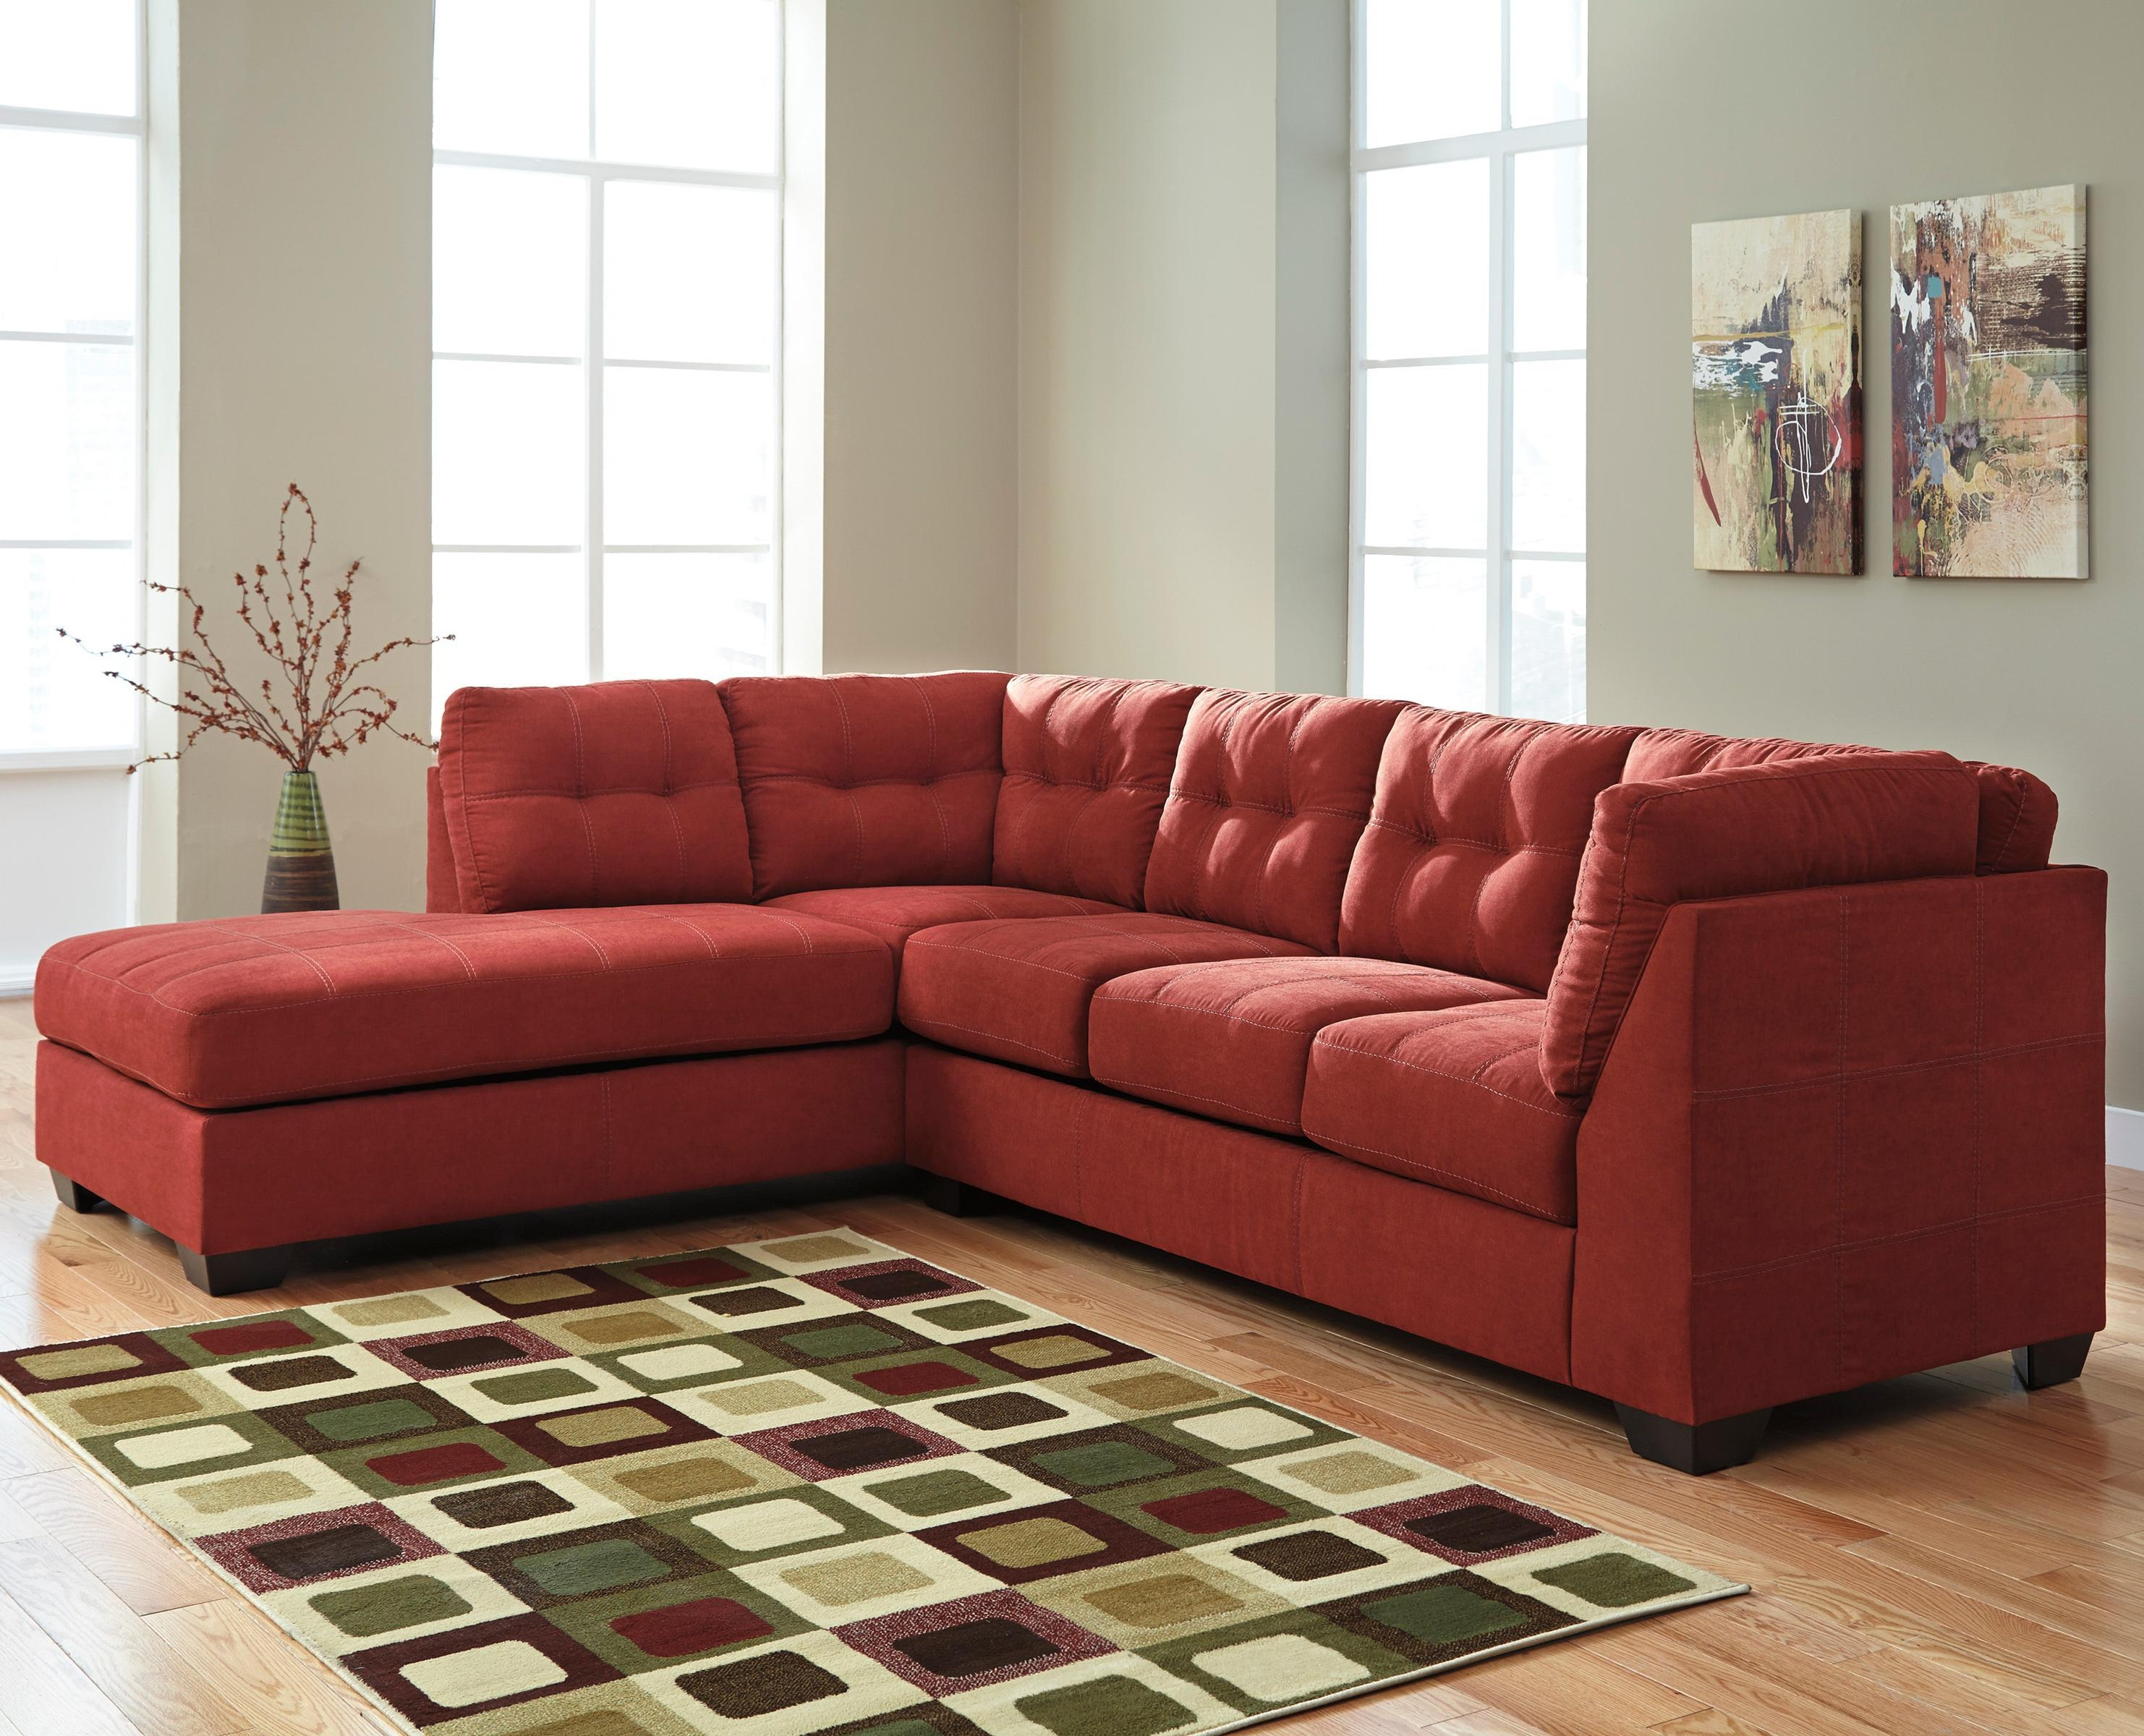 Sofas : Fabulous Red Sectional Sectional Sofas Wrap Around Couch 2 In Small 2 Piece Sectional Sofas (View 10 of 23)